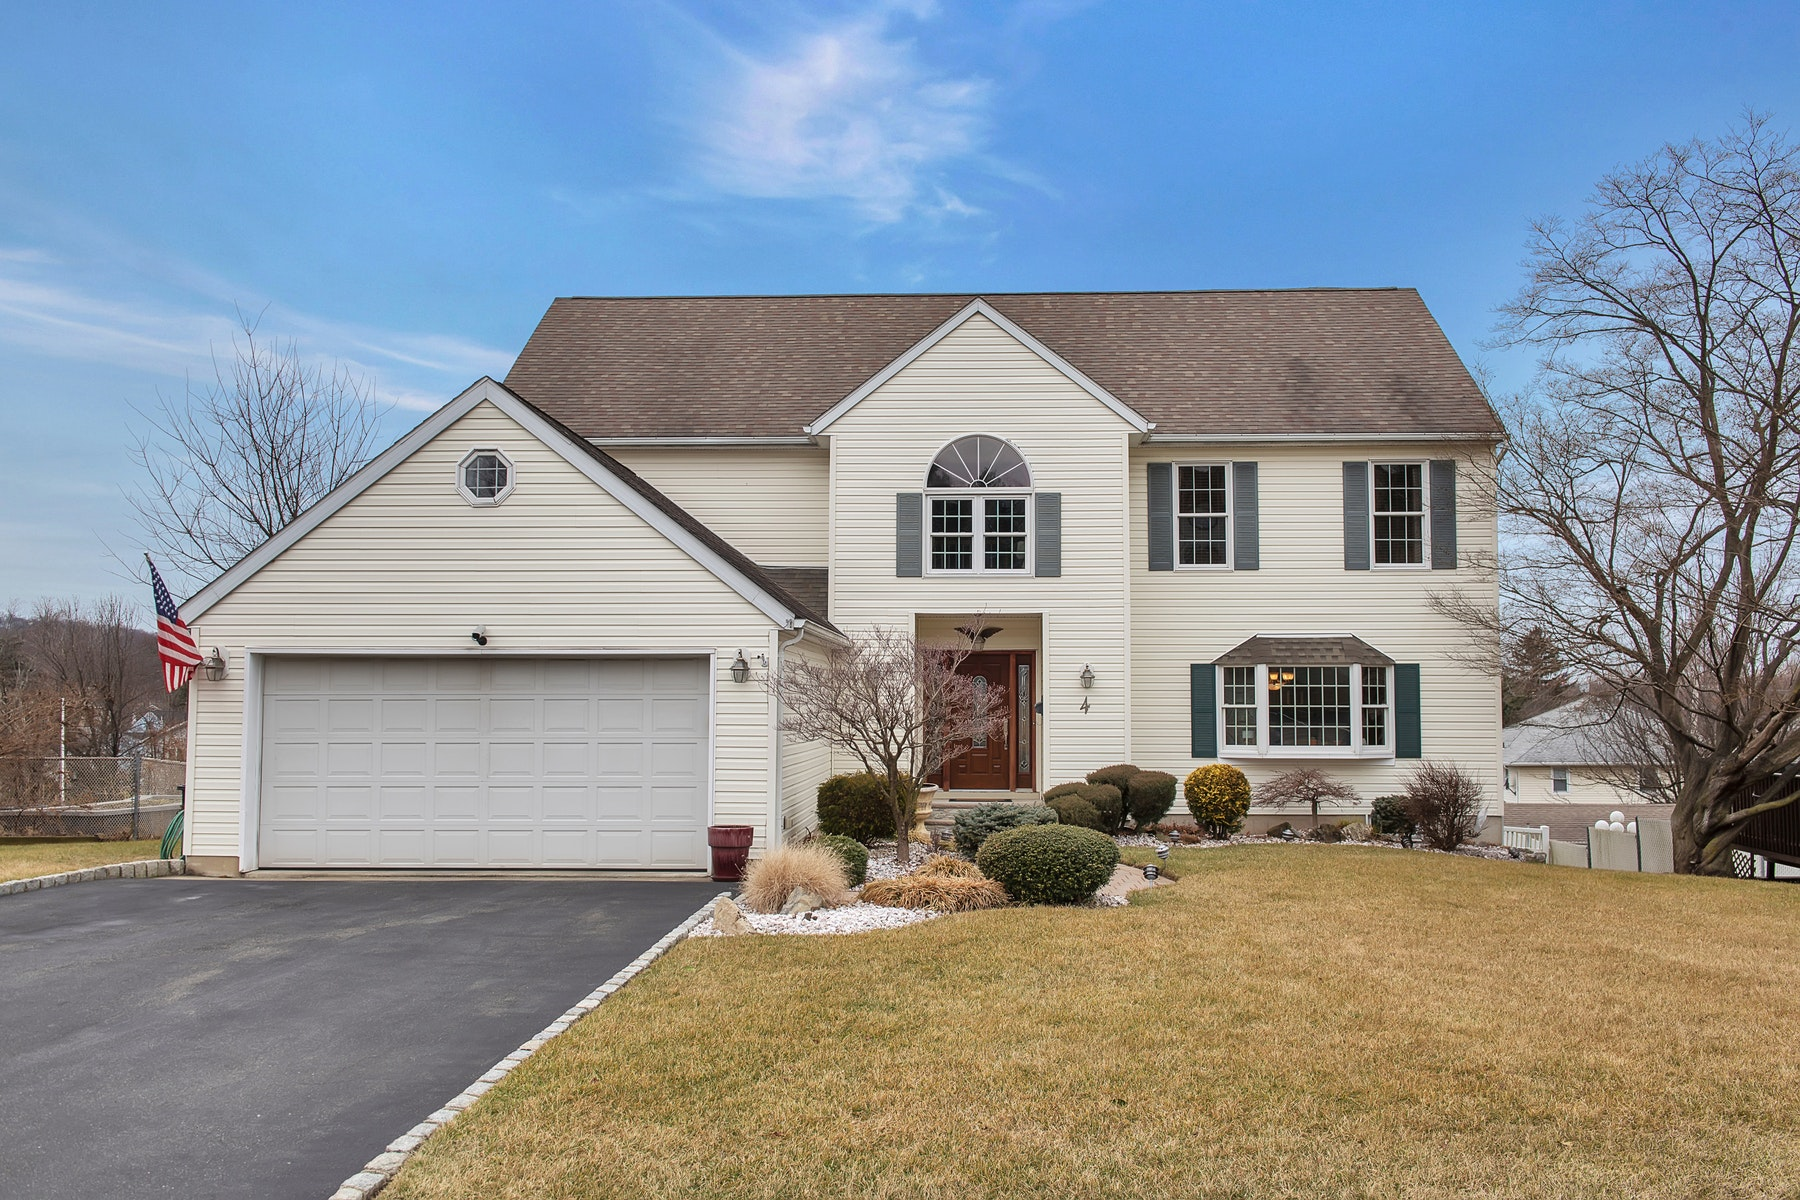 Single Family Home for Sale at Ideal Home for Entertaining 4 De Young Drive, Little Falls, New Jersey 07424 United States